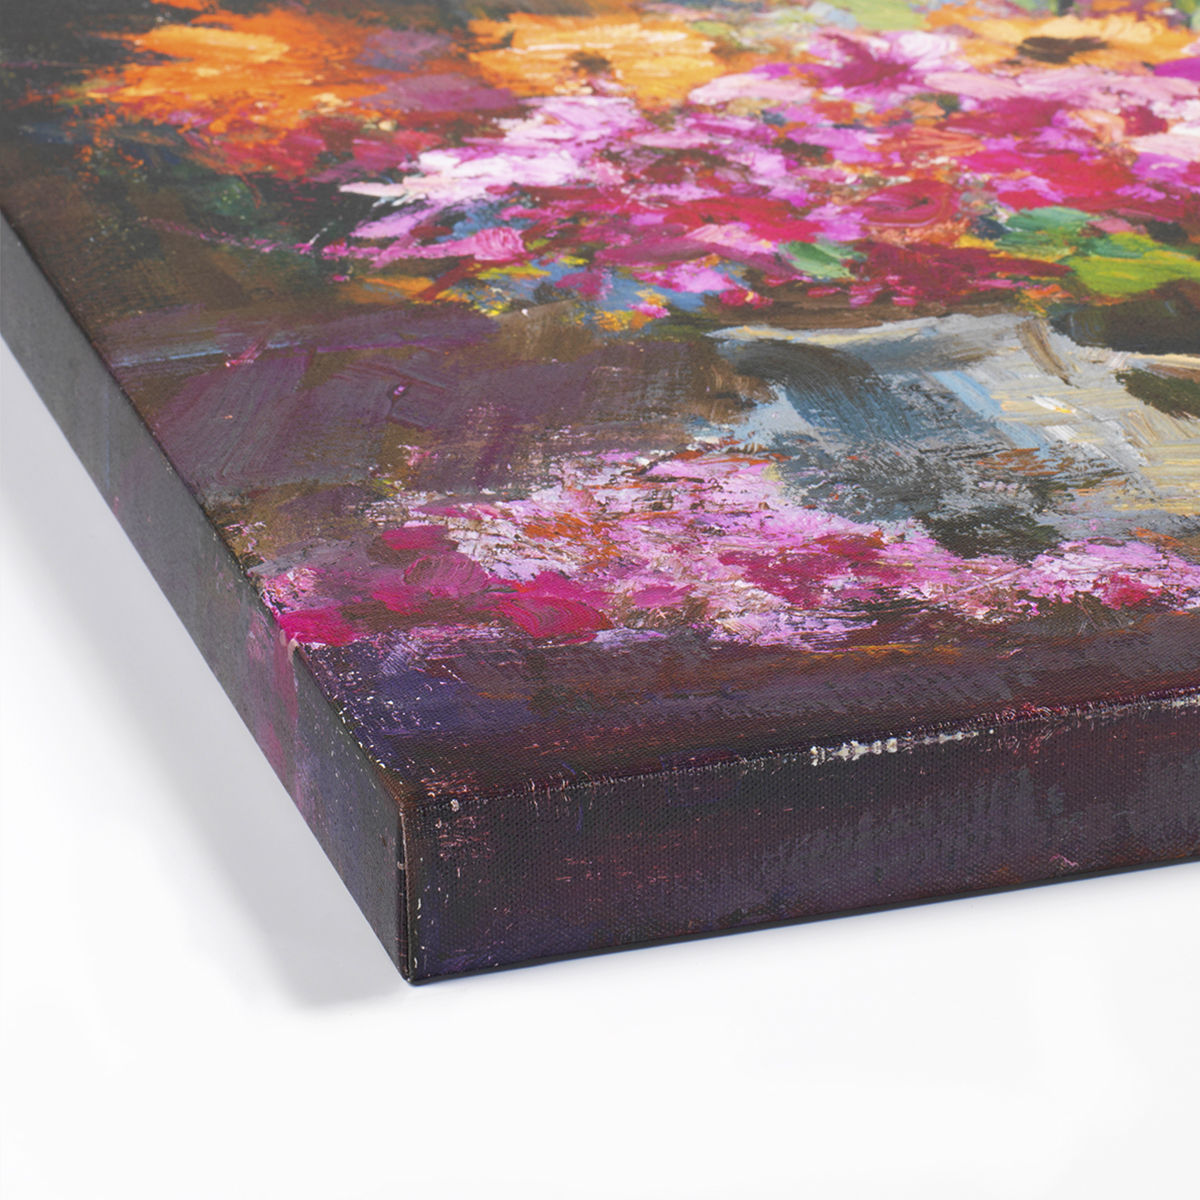 Custom High quality Digital Photo to Canvas prints gallery wrap